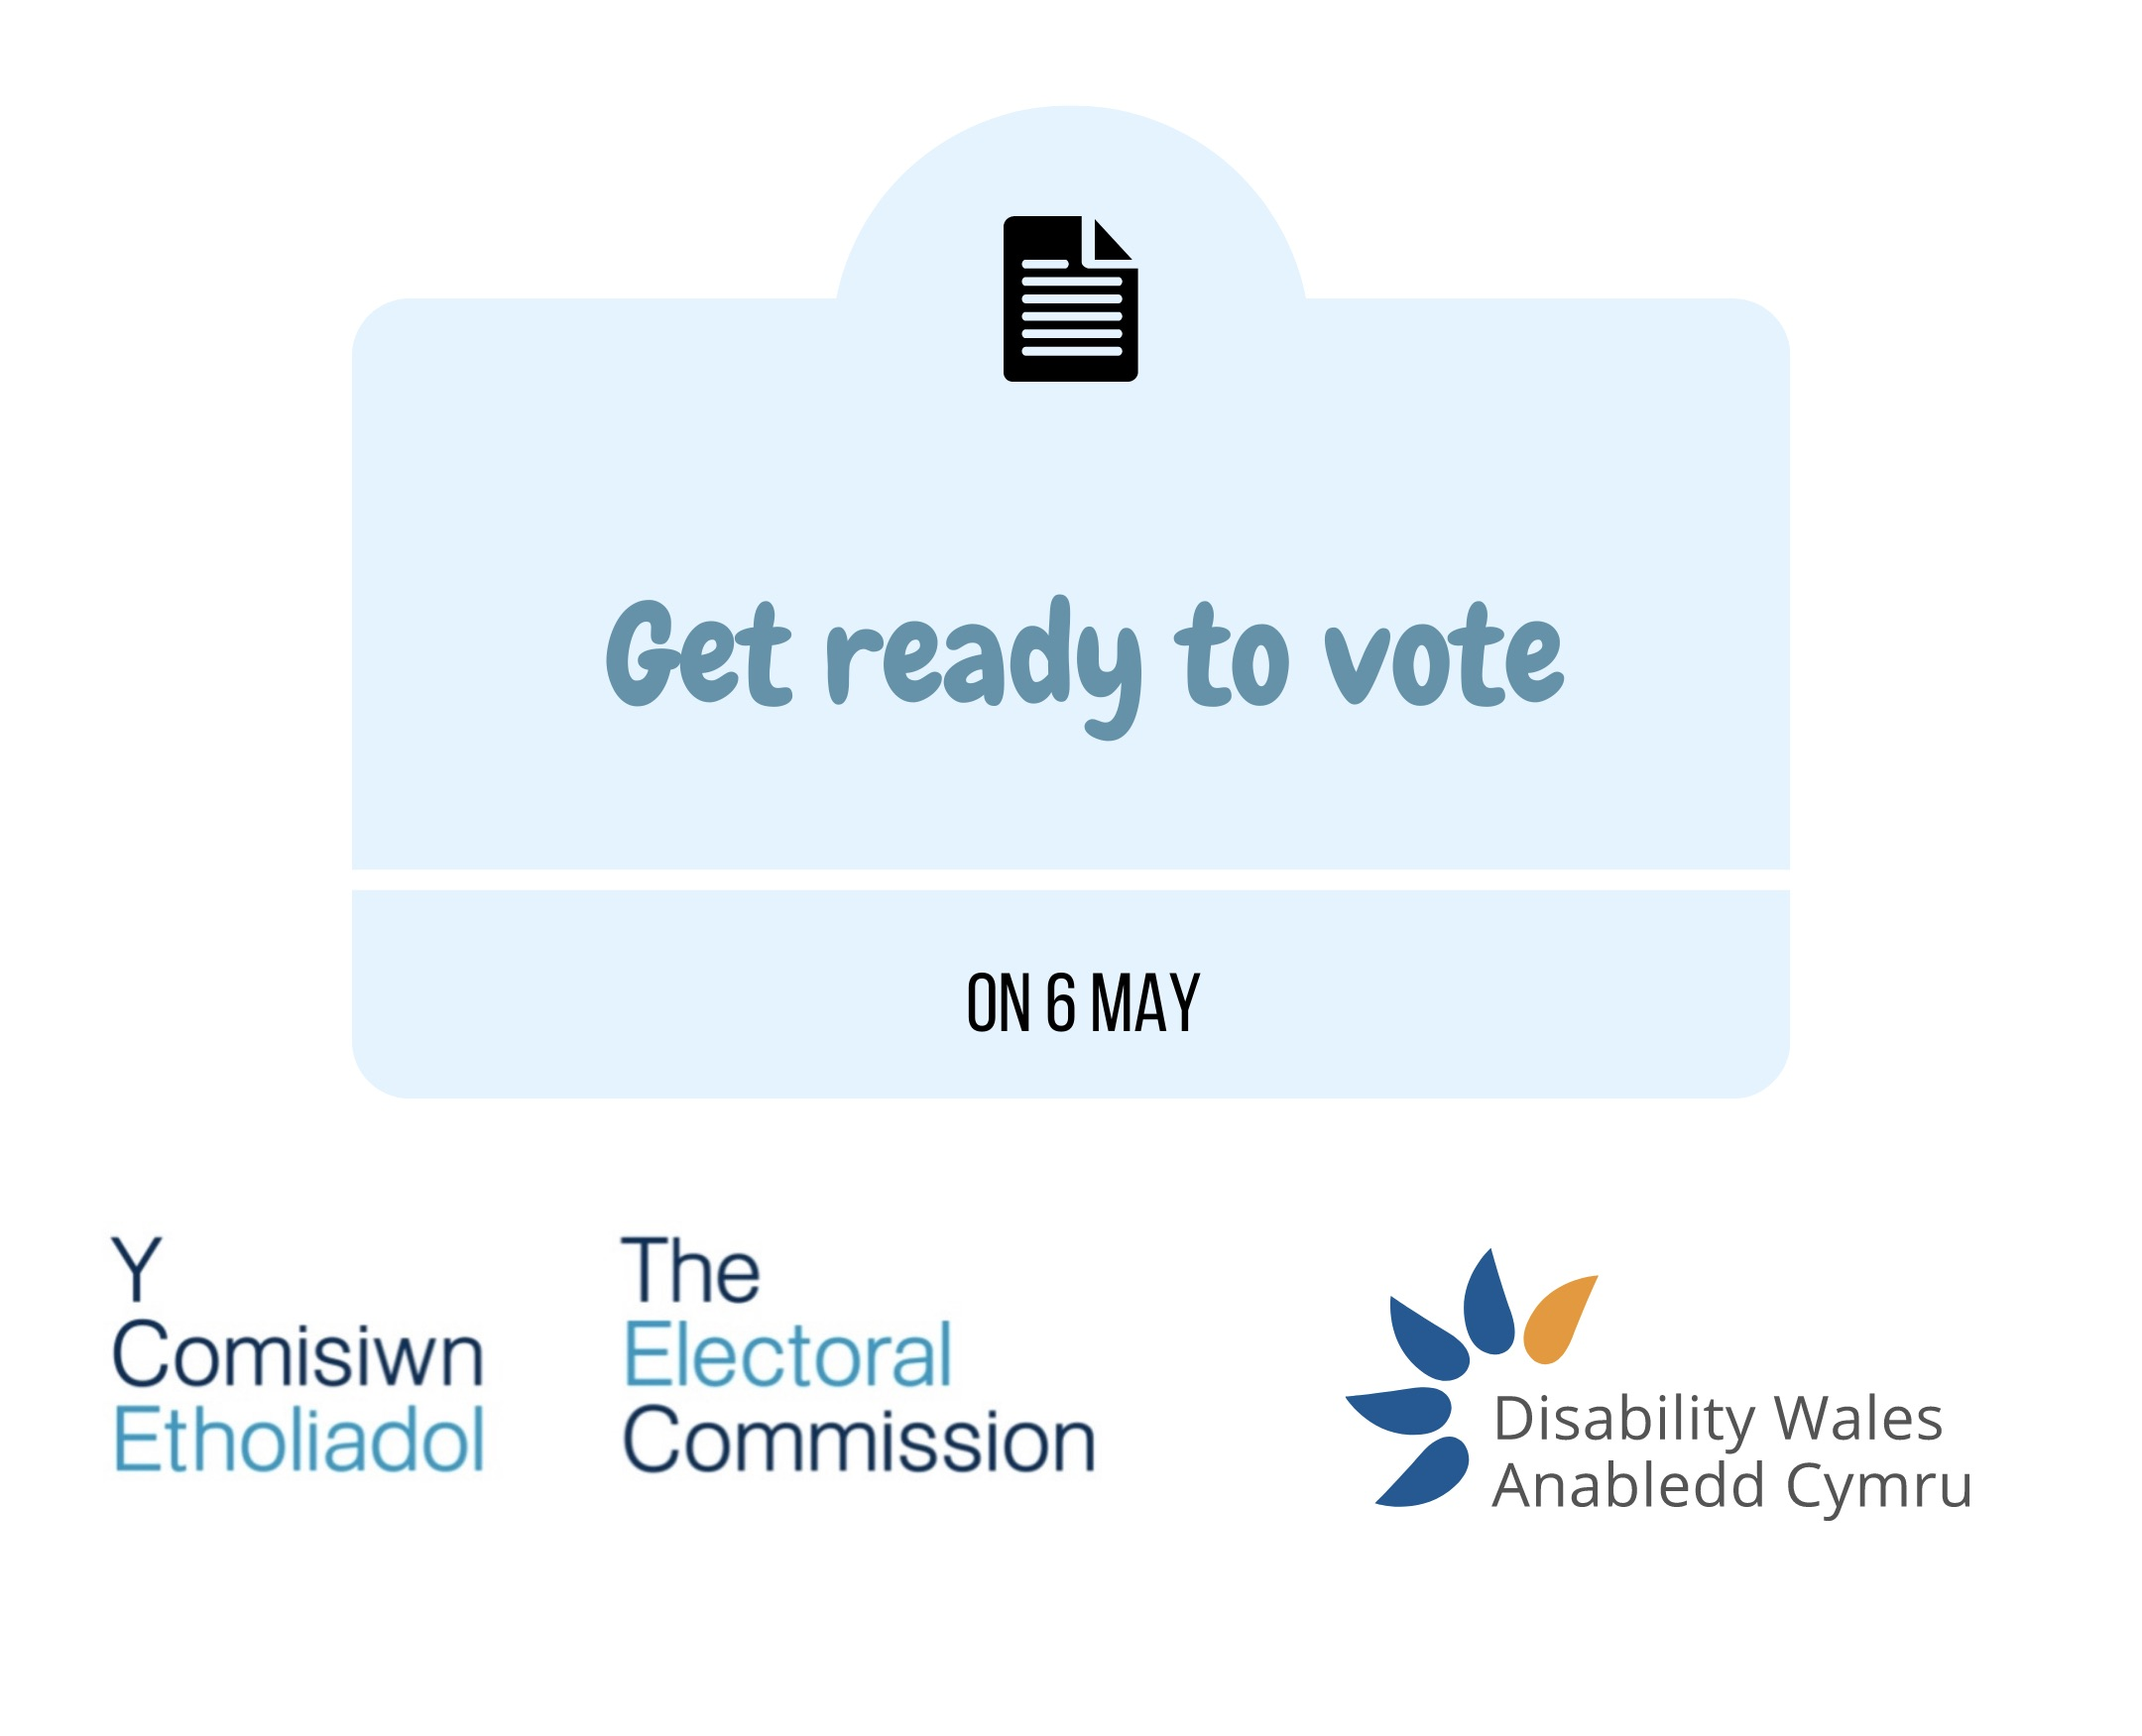 Text that says Get ready to vote set within a light blue square, the Electoral commission logo and DW's logo is beneath the sqaure